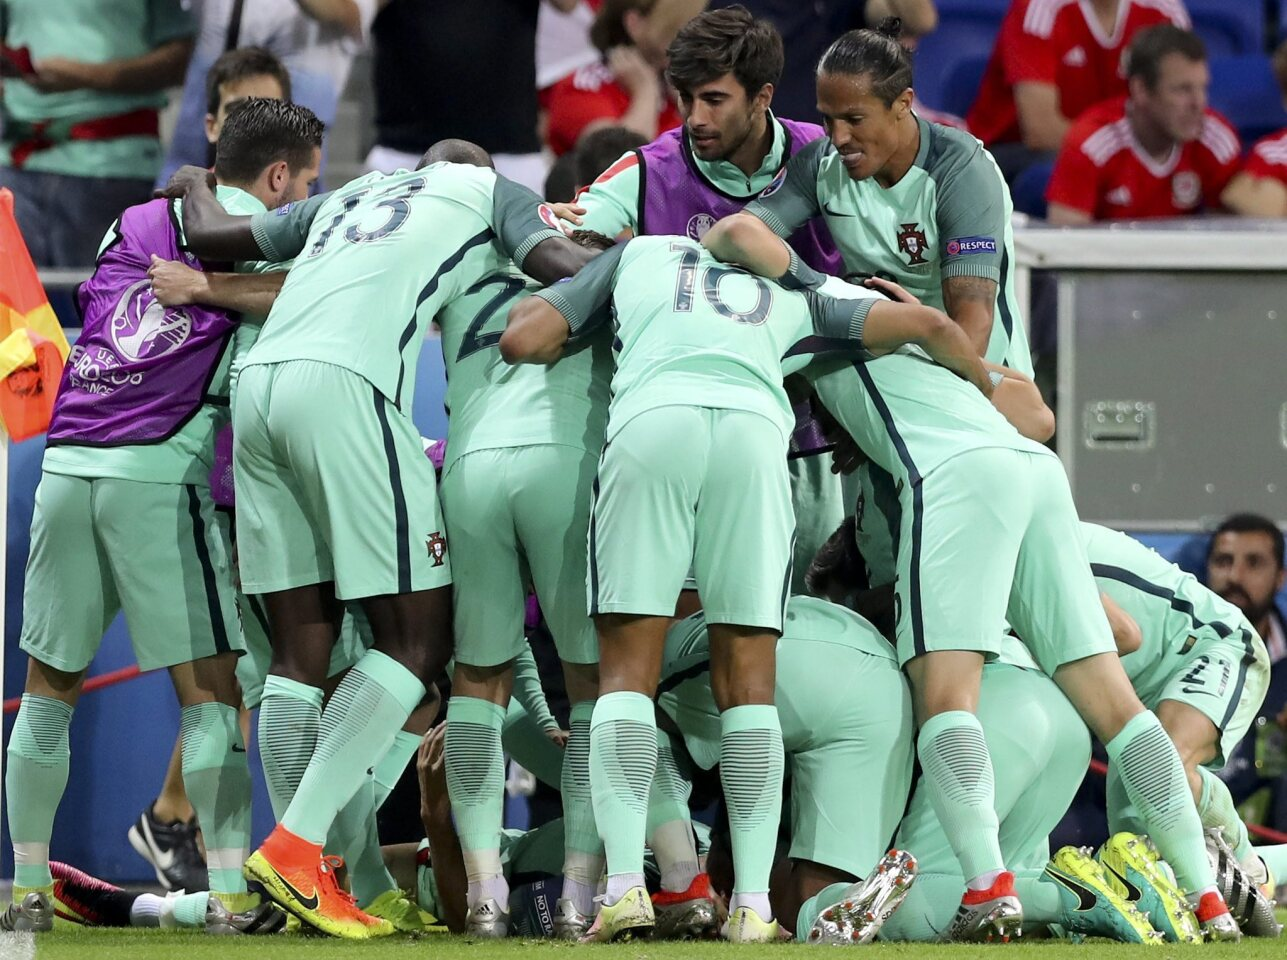 . Lyon (France), 06/07/2016.- Players of Portugal celebrate after they scored the first goal during the EURO 2016 semi final match between Portugal and Wales at Stade de Lyon in Lyon, France, 06 July 2016. (RESTRICTIONS APPLY: For editorial news reporting purposes only. Not used for commercial or marketing purposes without prior written approval of UEFA. Images must appear as still images and must not emulate match action video footage. Photographs published in online publications (whether via the Internet or otherwise) shall have an interval of at least 20 seconds between the posting.) (Francia) EFE/EPA/MIGUEL A. LOPES EDITORIAL USE ONLY ** Usable by HOY and SD Only **